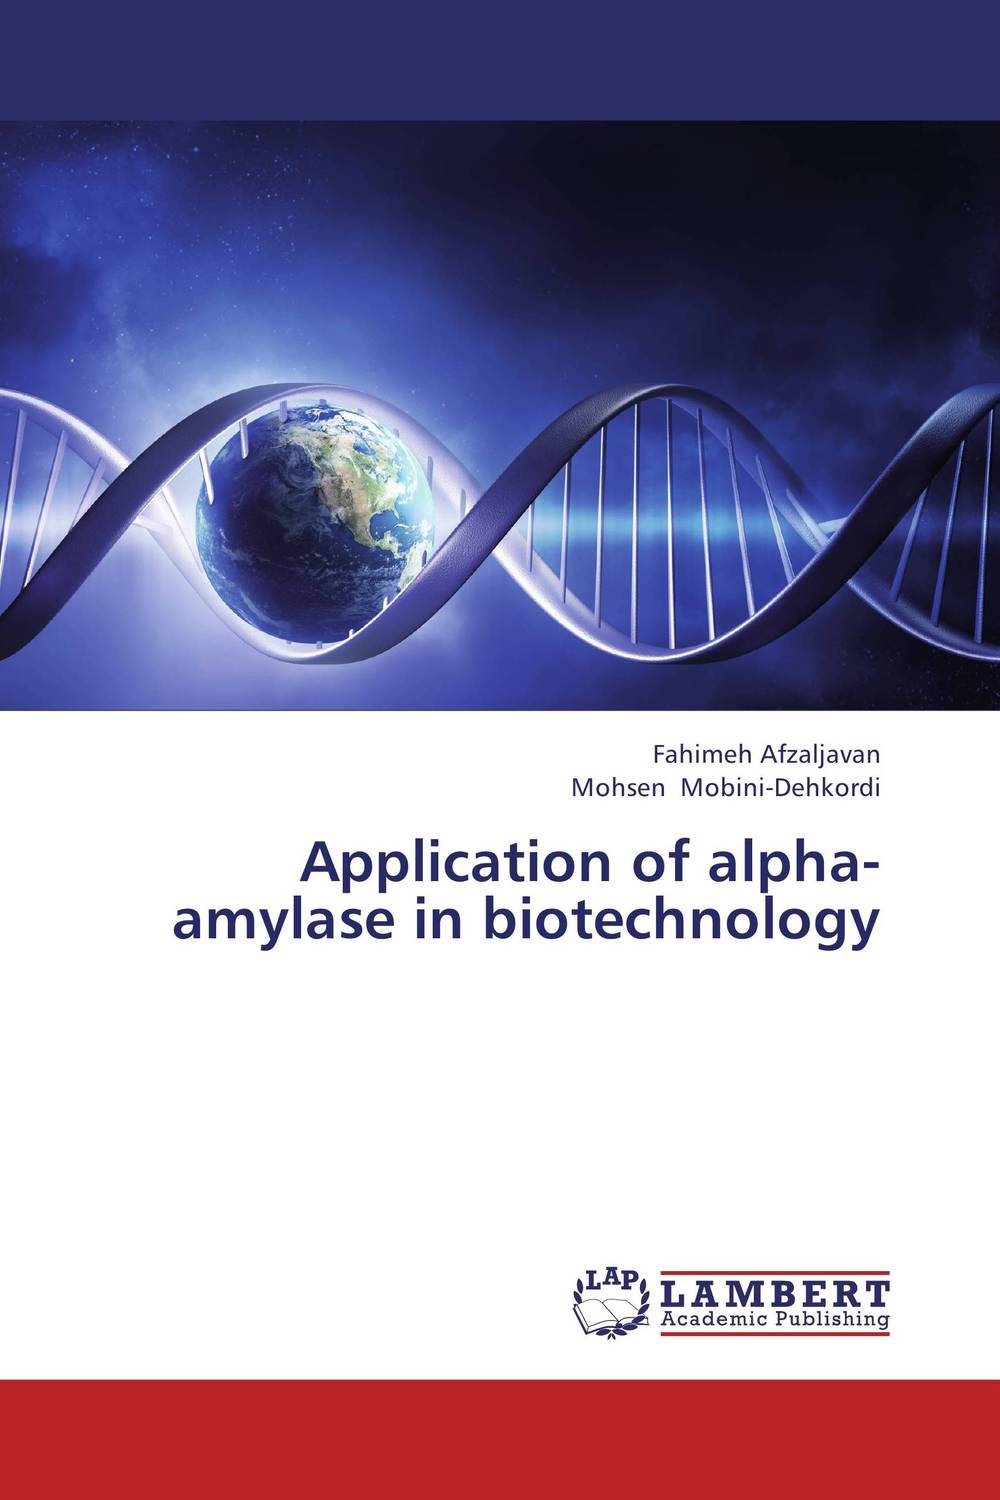 Application of alpha-amylase in biotechnology seeing things as they are